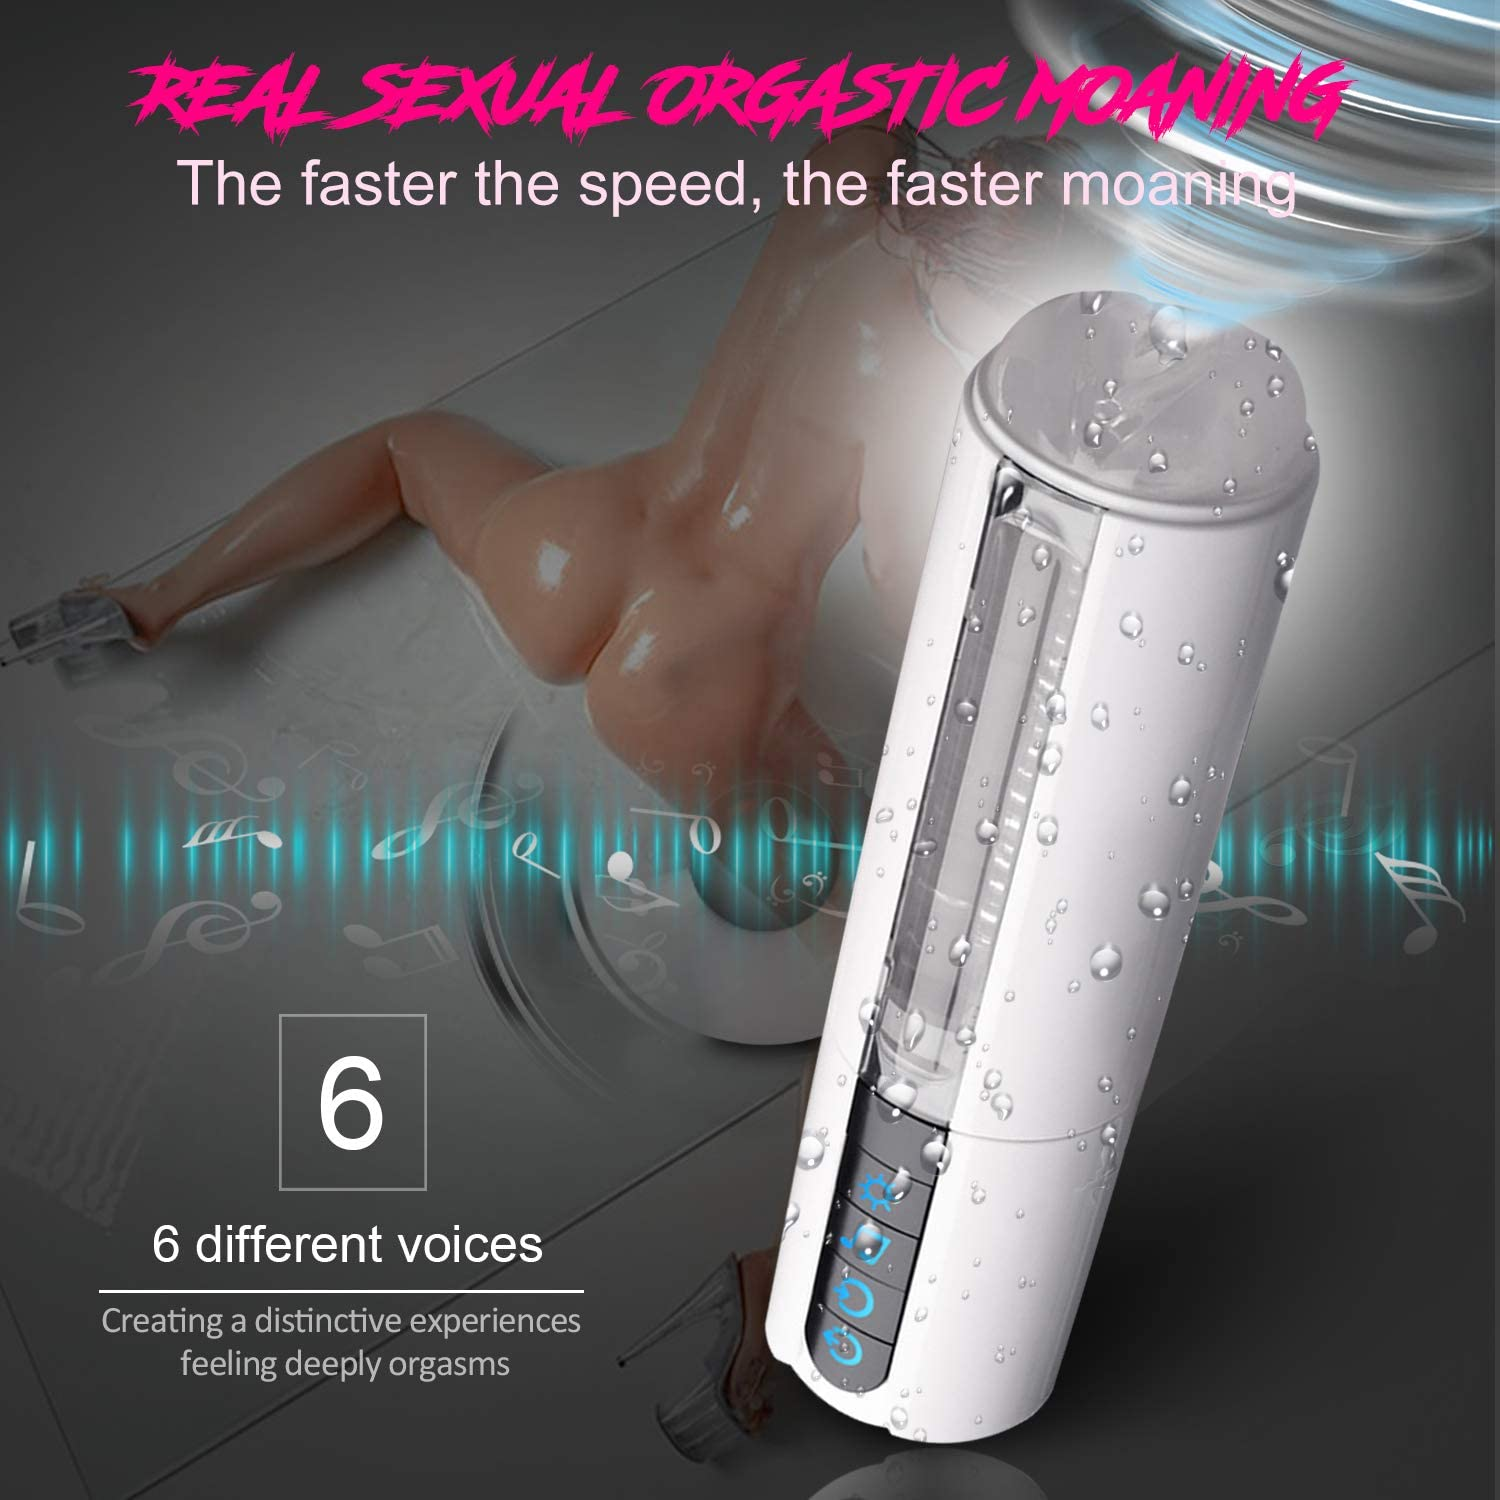 Male Electric Massager Kit with 9 Powerful Modes Suction Vibration Massage Vacuum Pump Tool, Electric Thrustíig Pennis Sucking Toys Birthday Gift for Boyfriend Husband Sexy Underwear Toy for Man